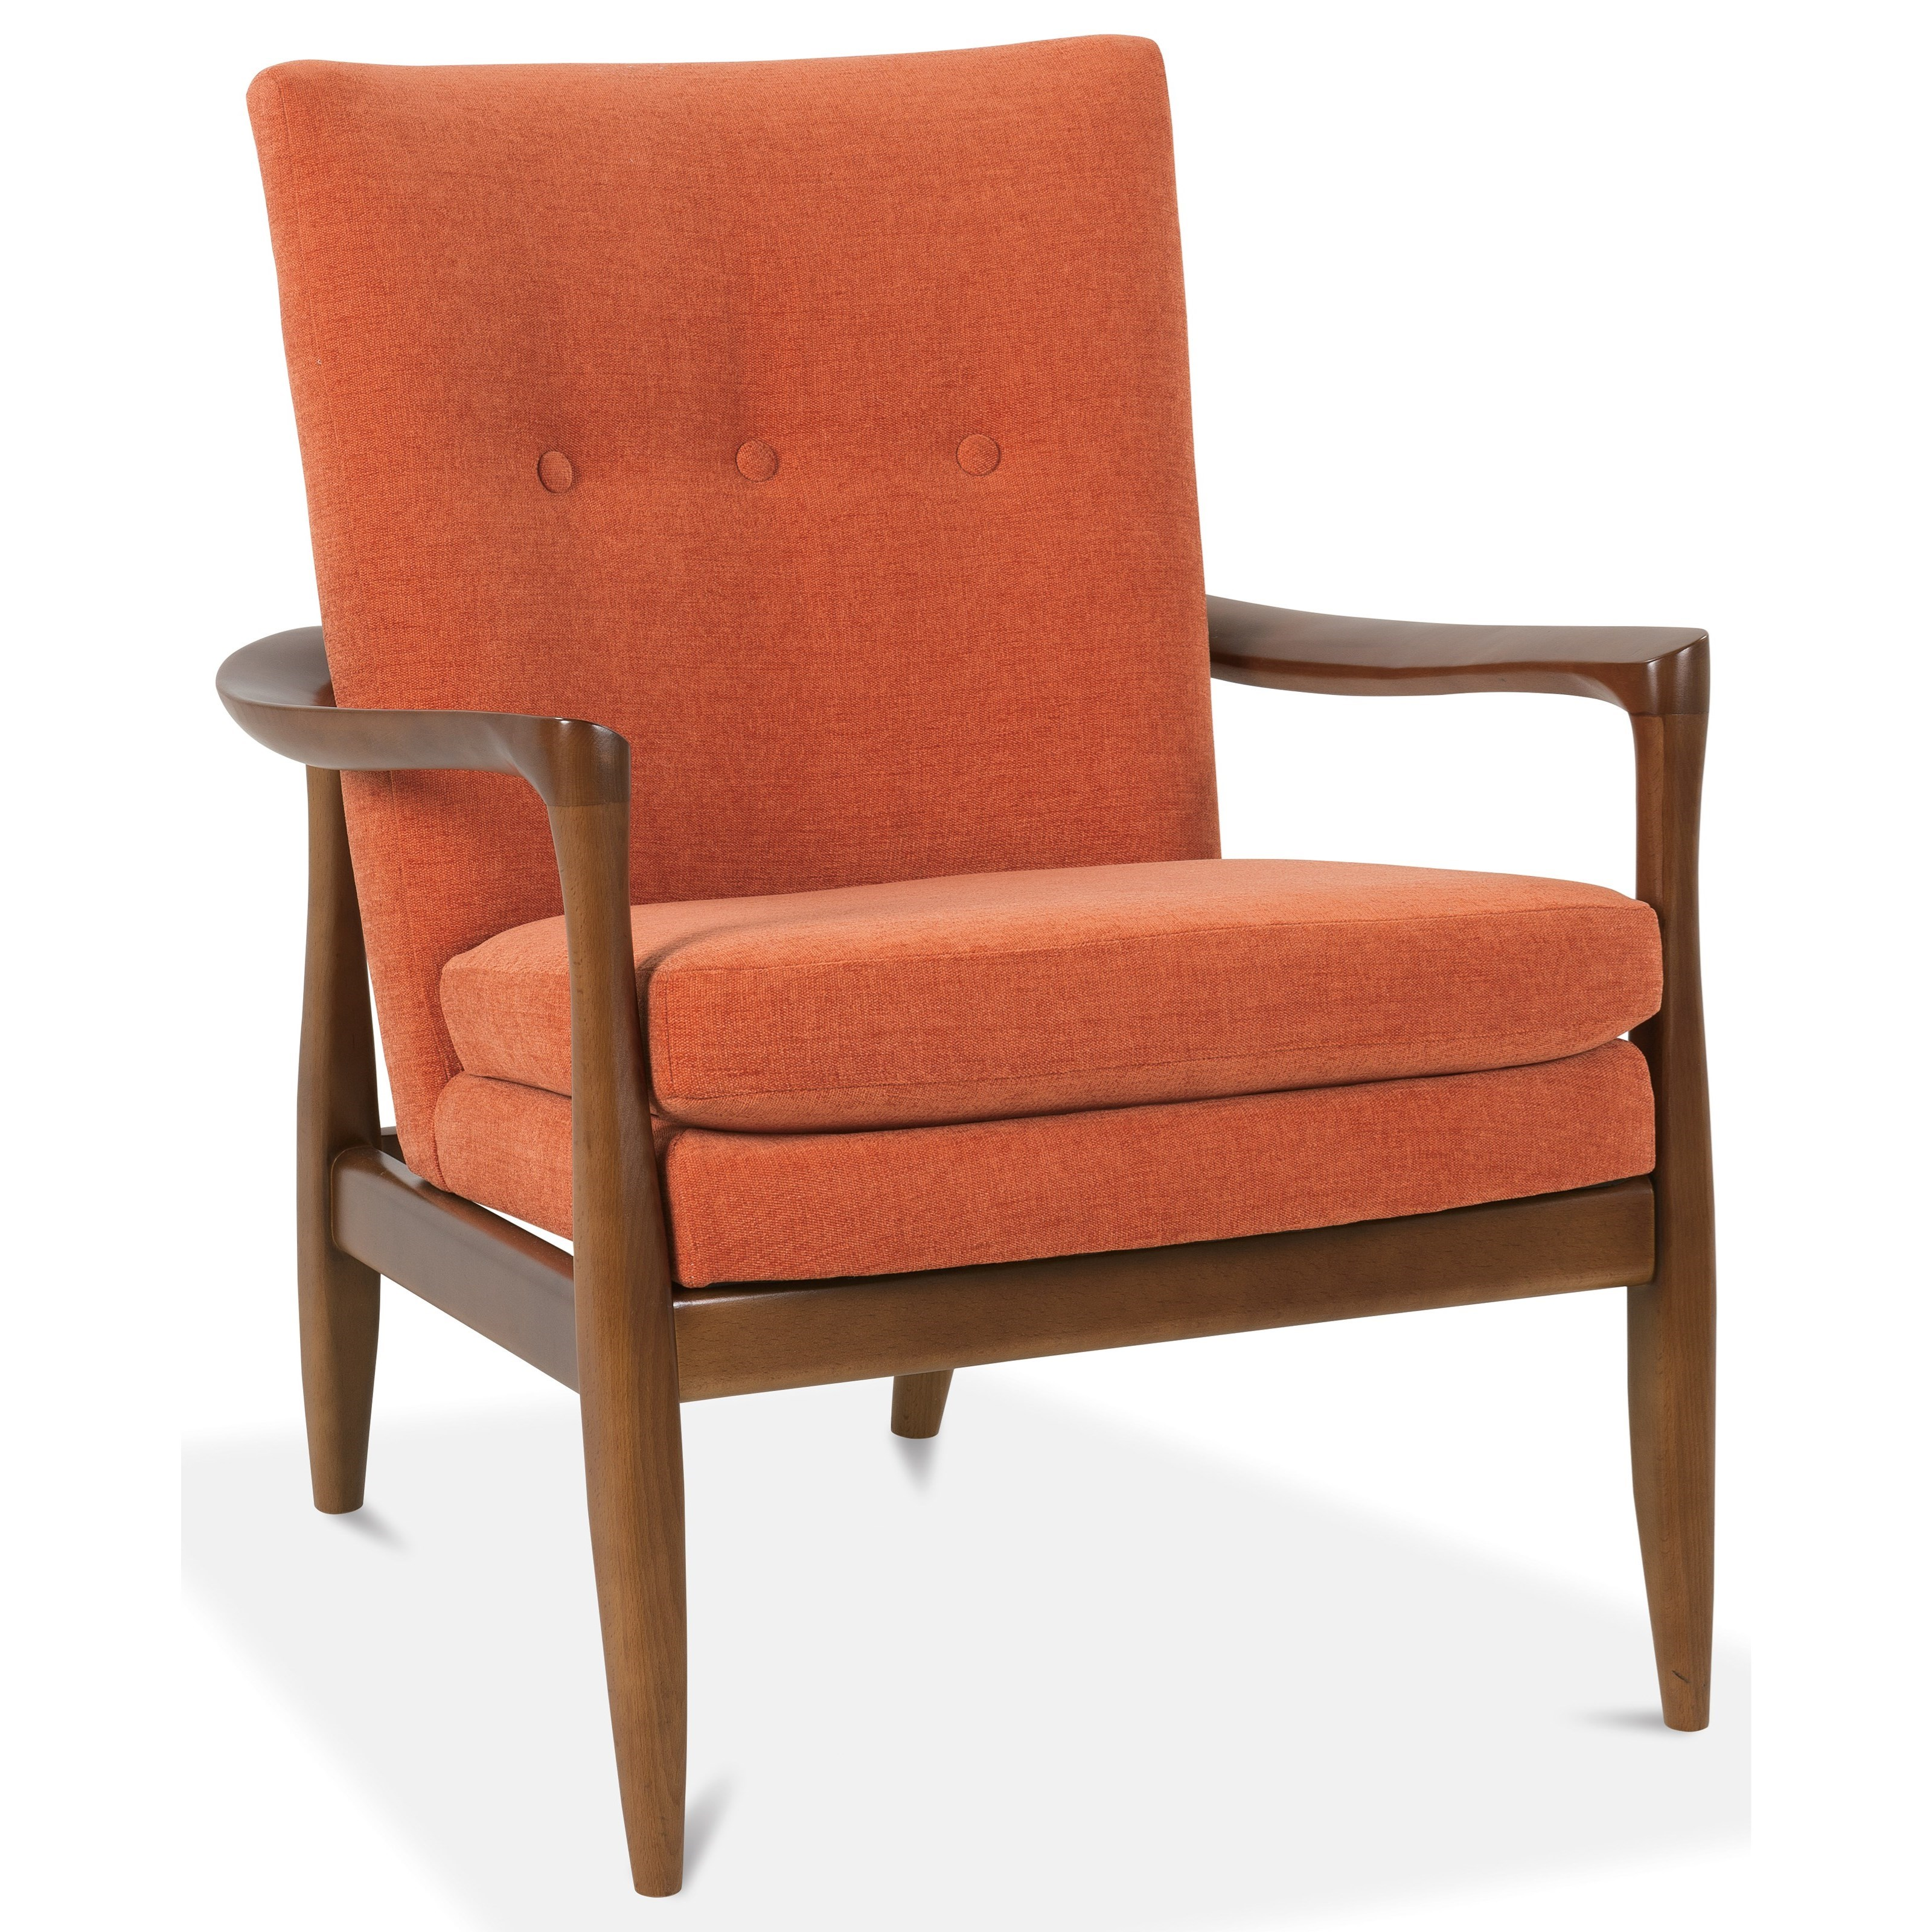 wood frame accent chairs steel chair for restaurant rowe and accents harris